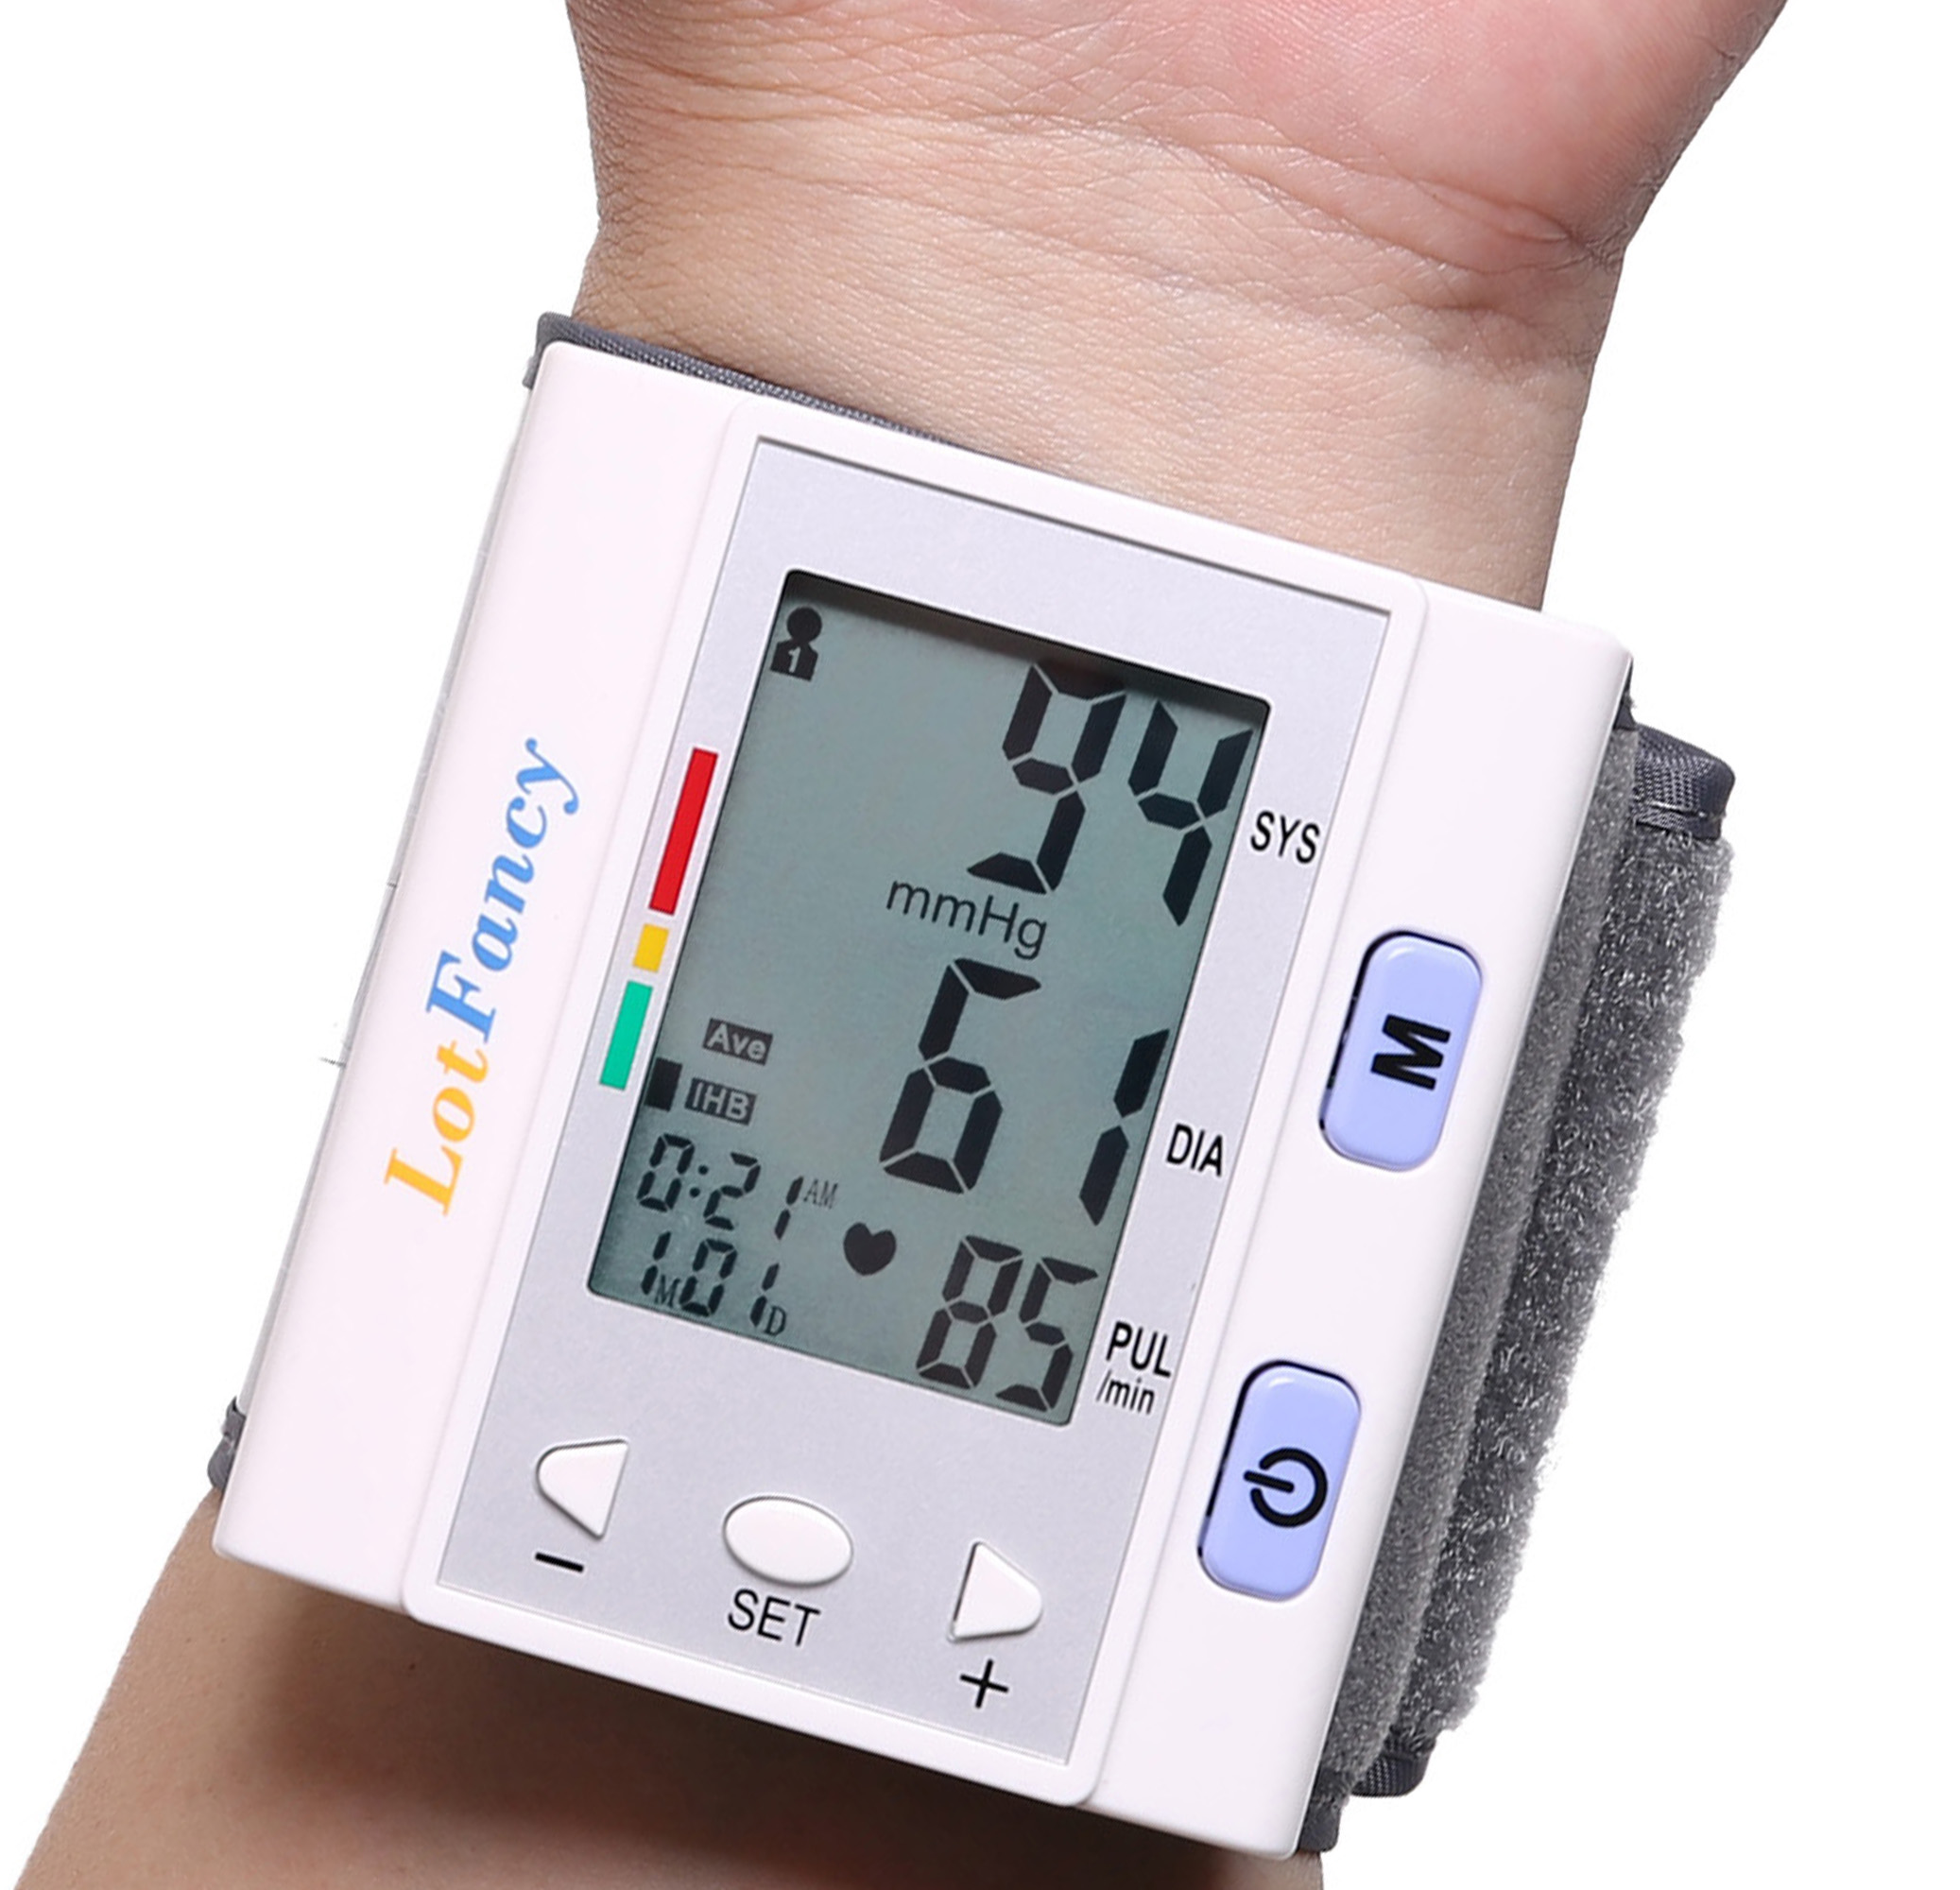 LotFancy Blood Pressure Monitor Wrist Cuff - Automatic Digital BP Machine with Irregular Heartbeat Detector - Portable for 4 User Home Use, FDA Approved